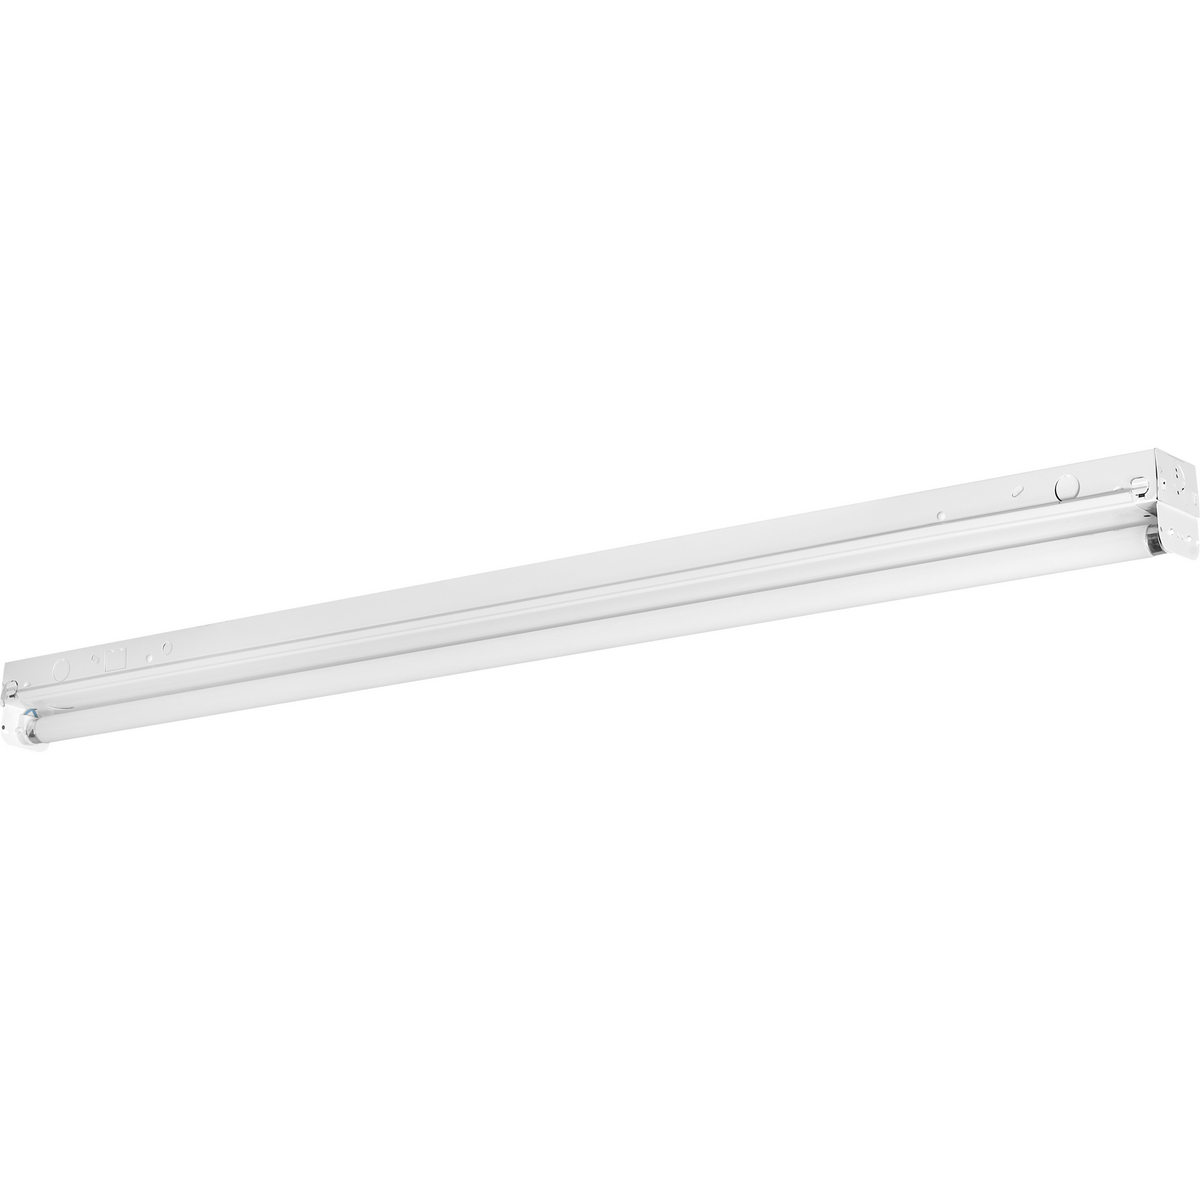 PRO P7267-30EB One Light White Fluorescent Light 1X32Bi-Pin Twist-In NRM 2012